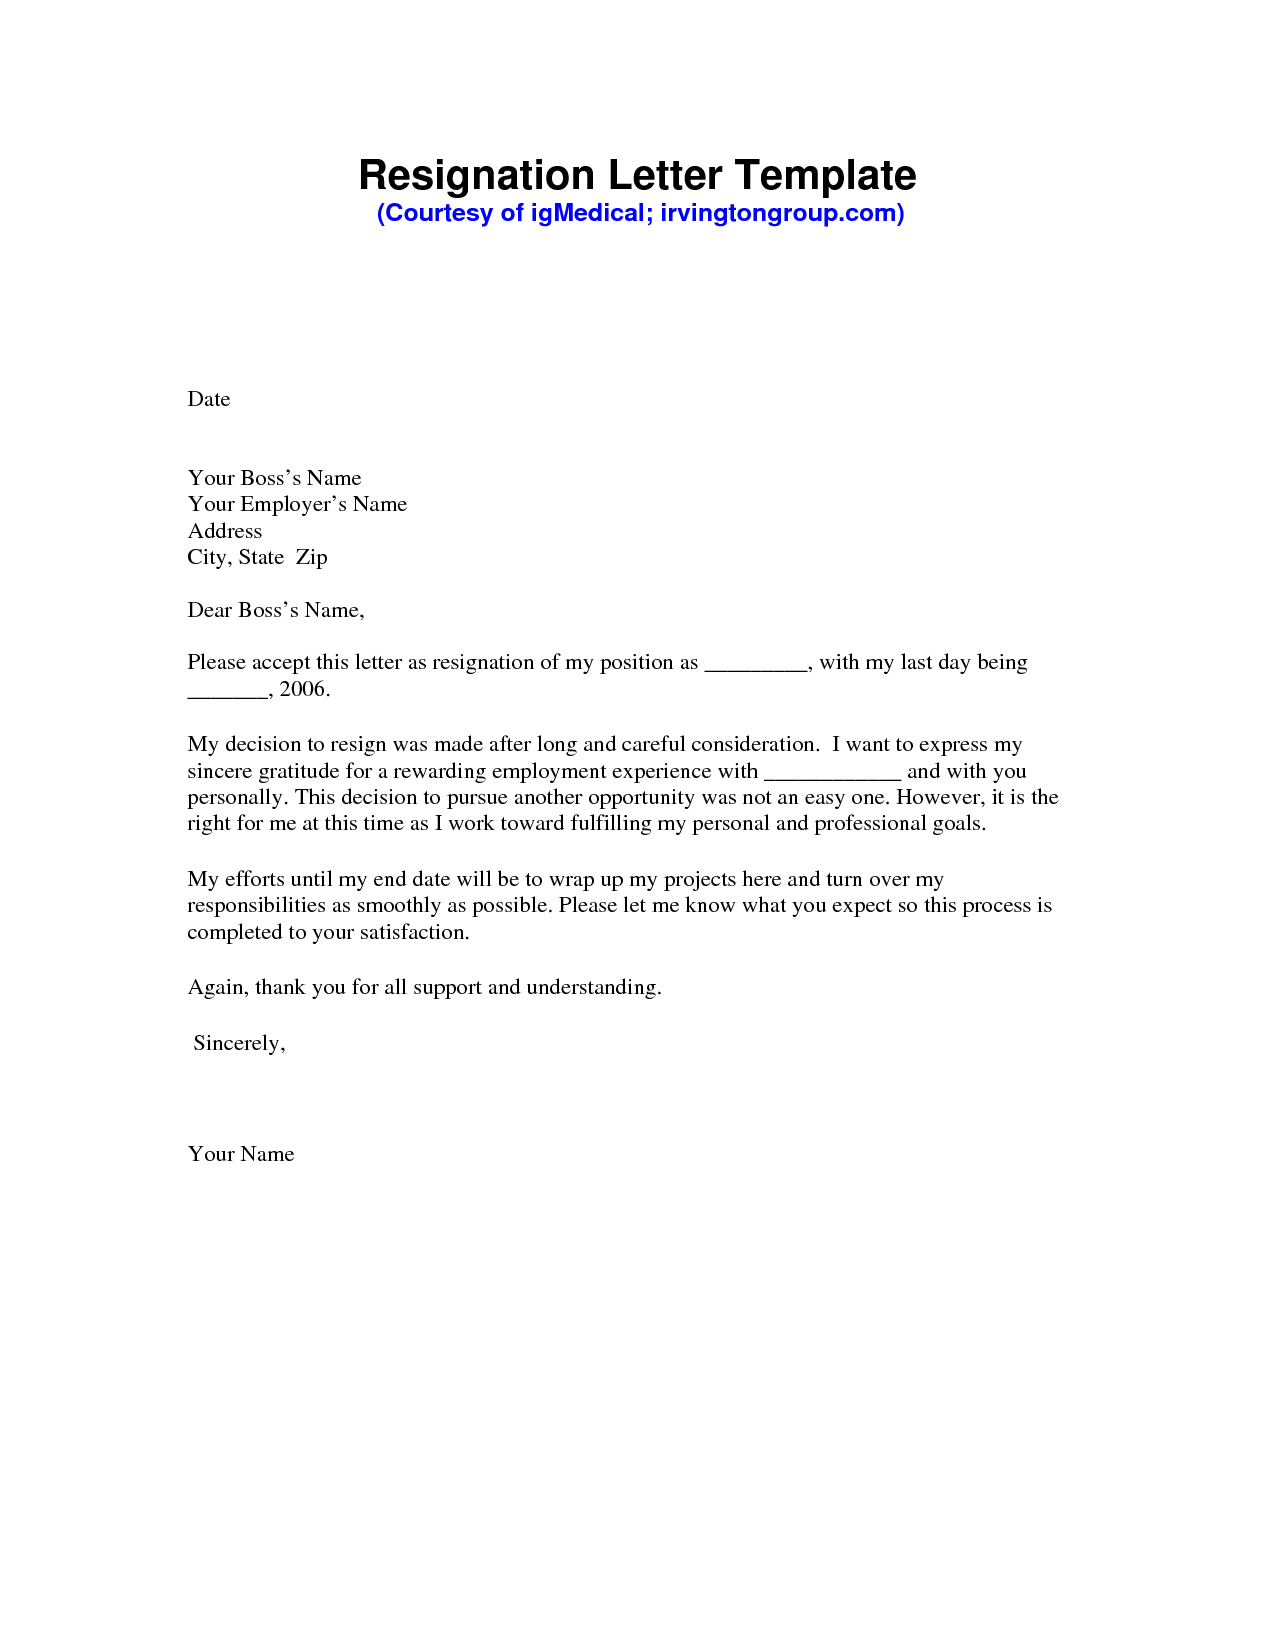 professional resignation letter template apology letter 2017 resignation letter template is a 17